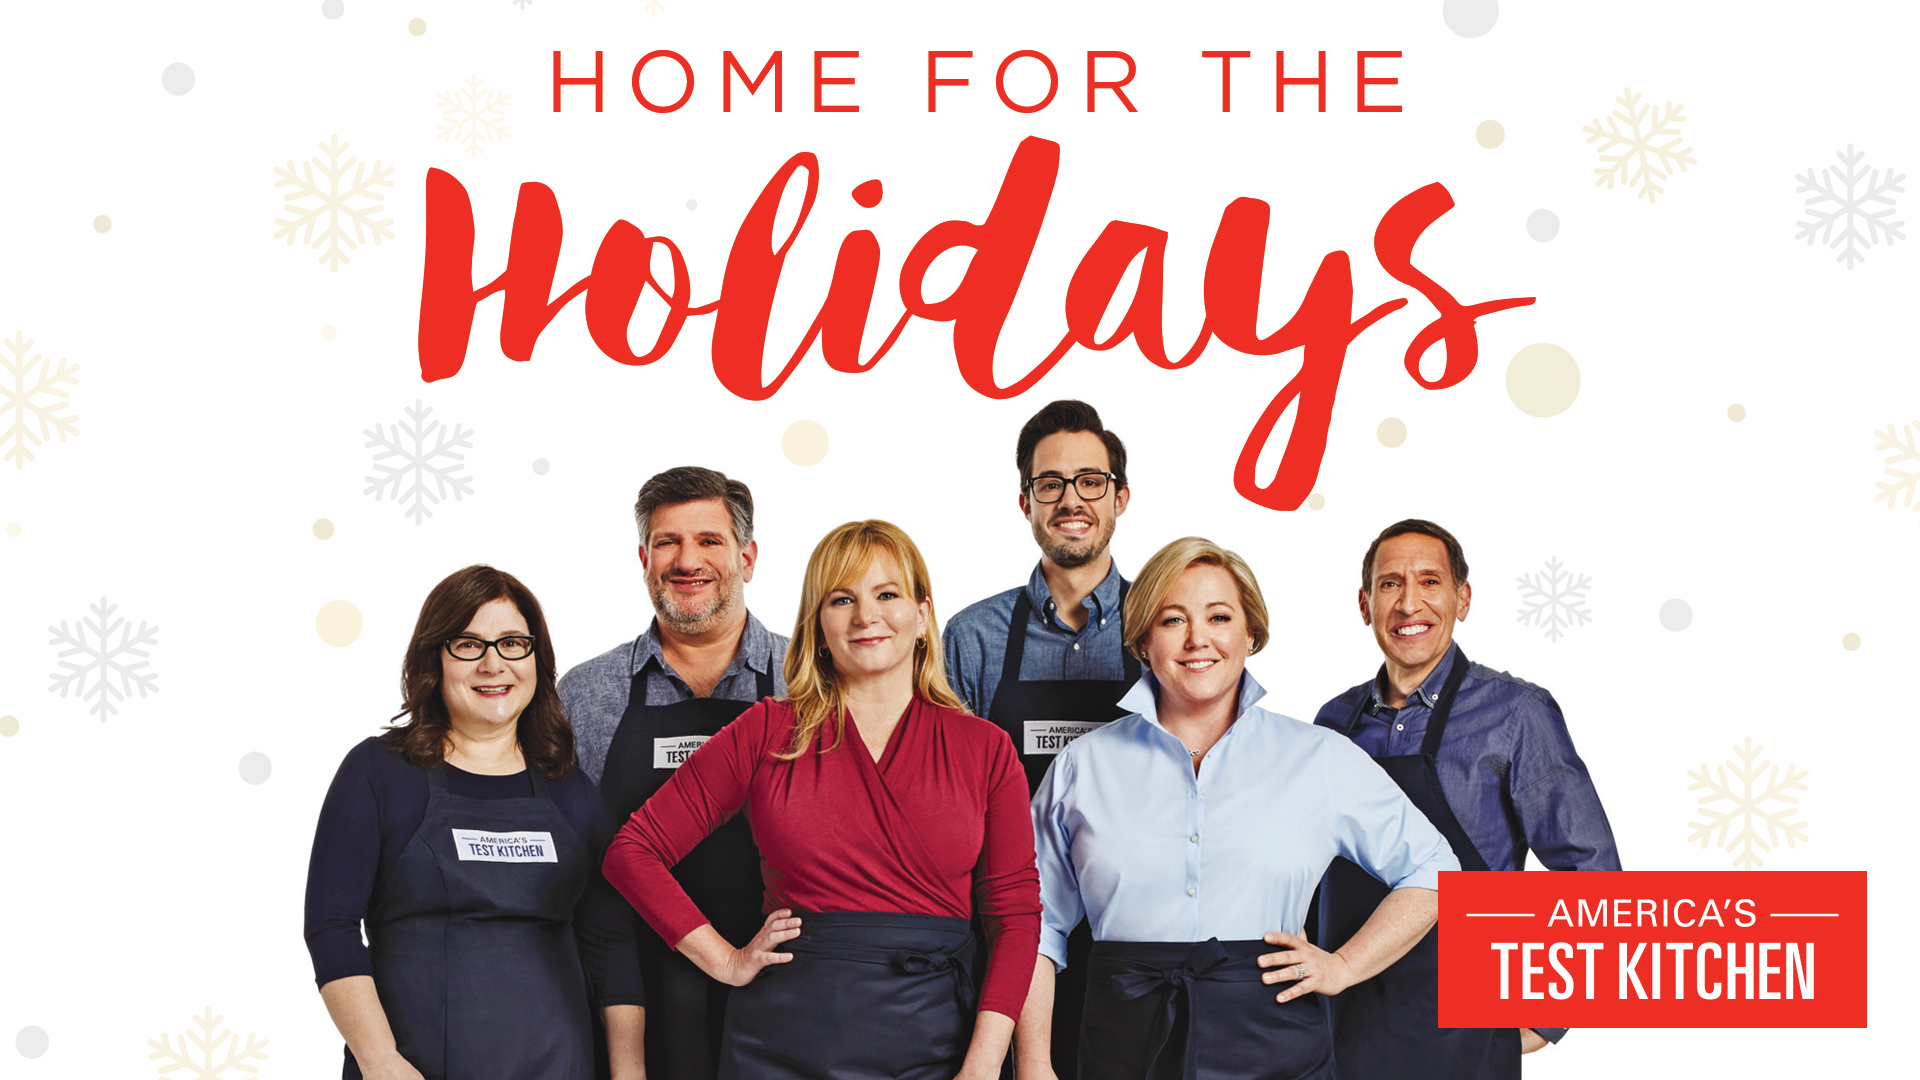 America's Test Kitchen Special: Home for the Holidays: Season 1